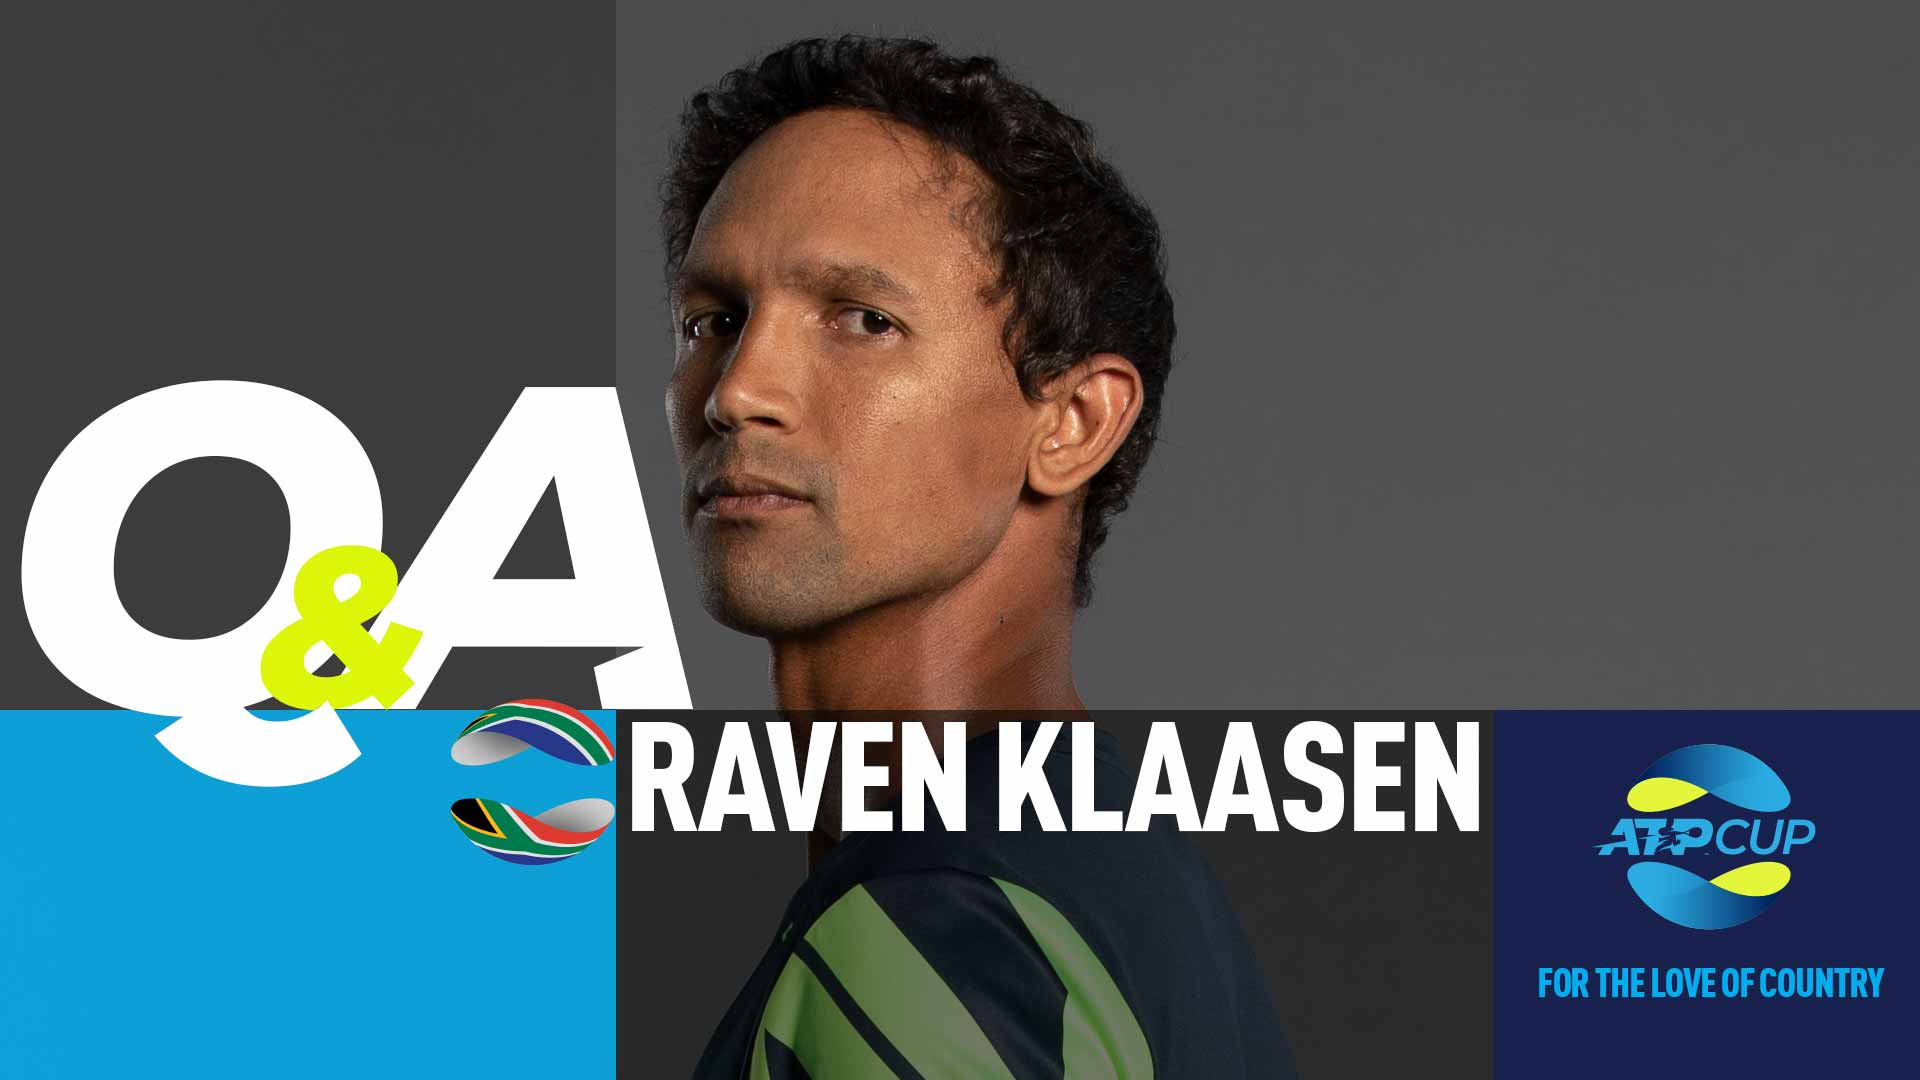 Raven Klaasen at the ATP Cup